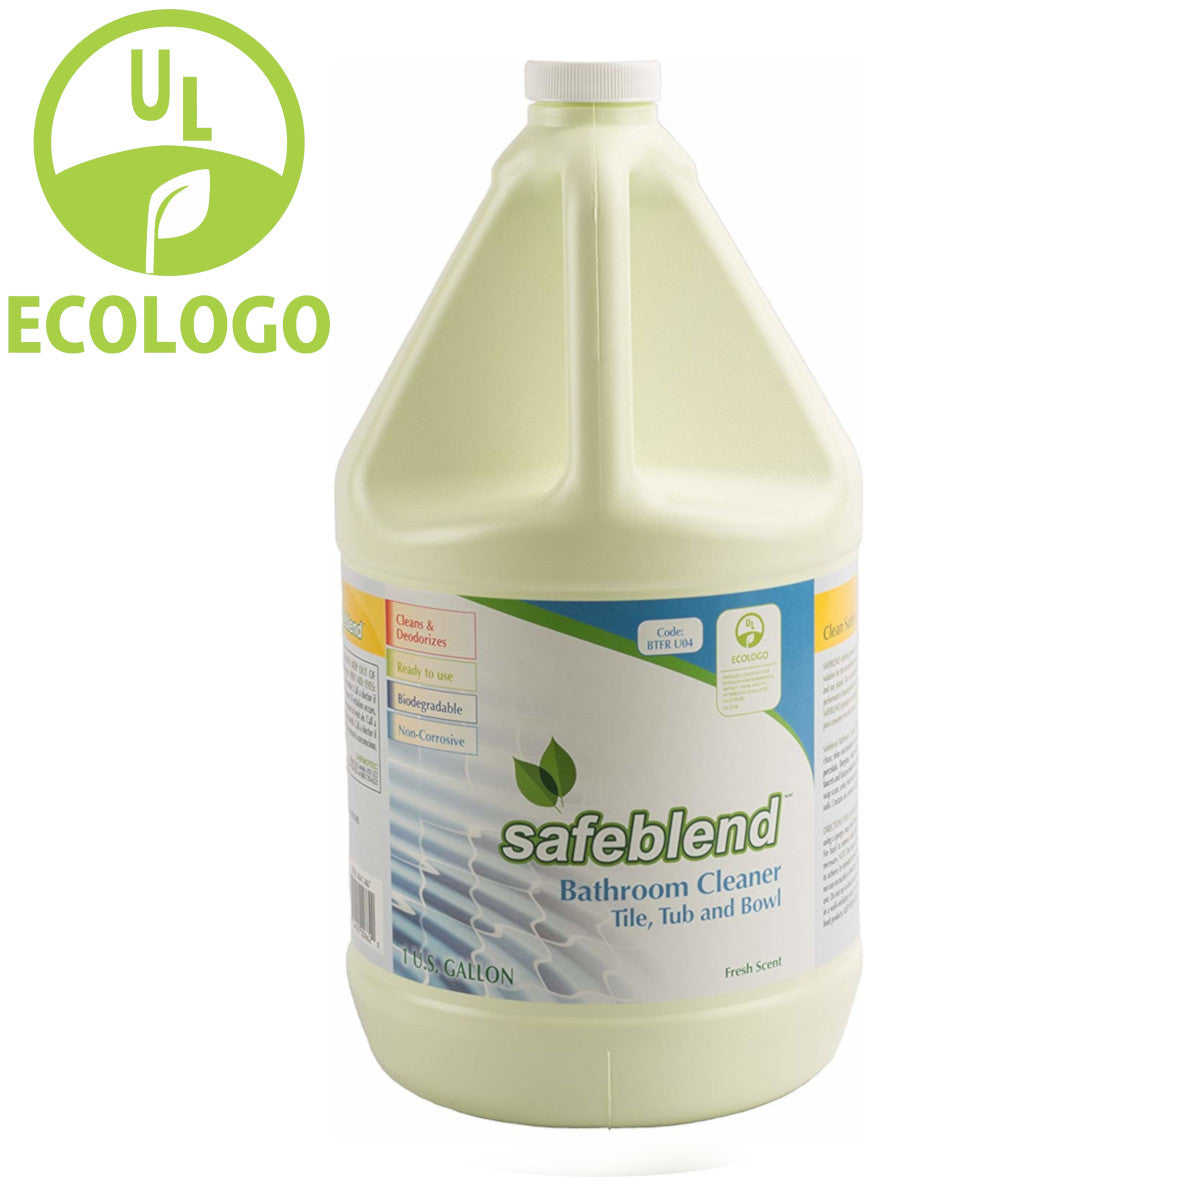 Safeblend Ready to Use EcoLogo Bathroom Cleaner - 4L - Super Vacs